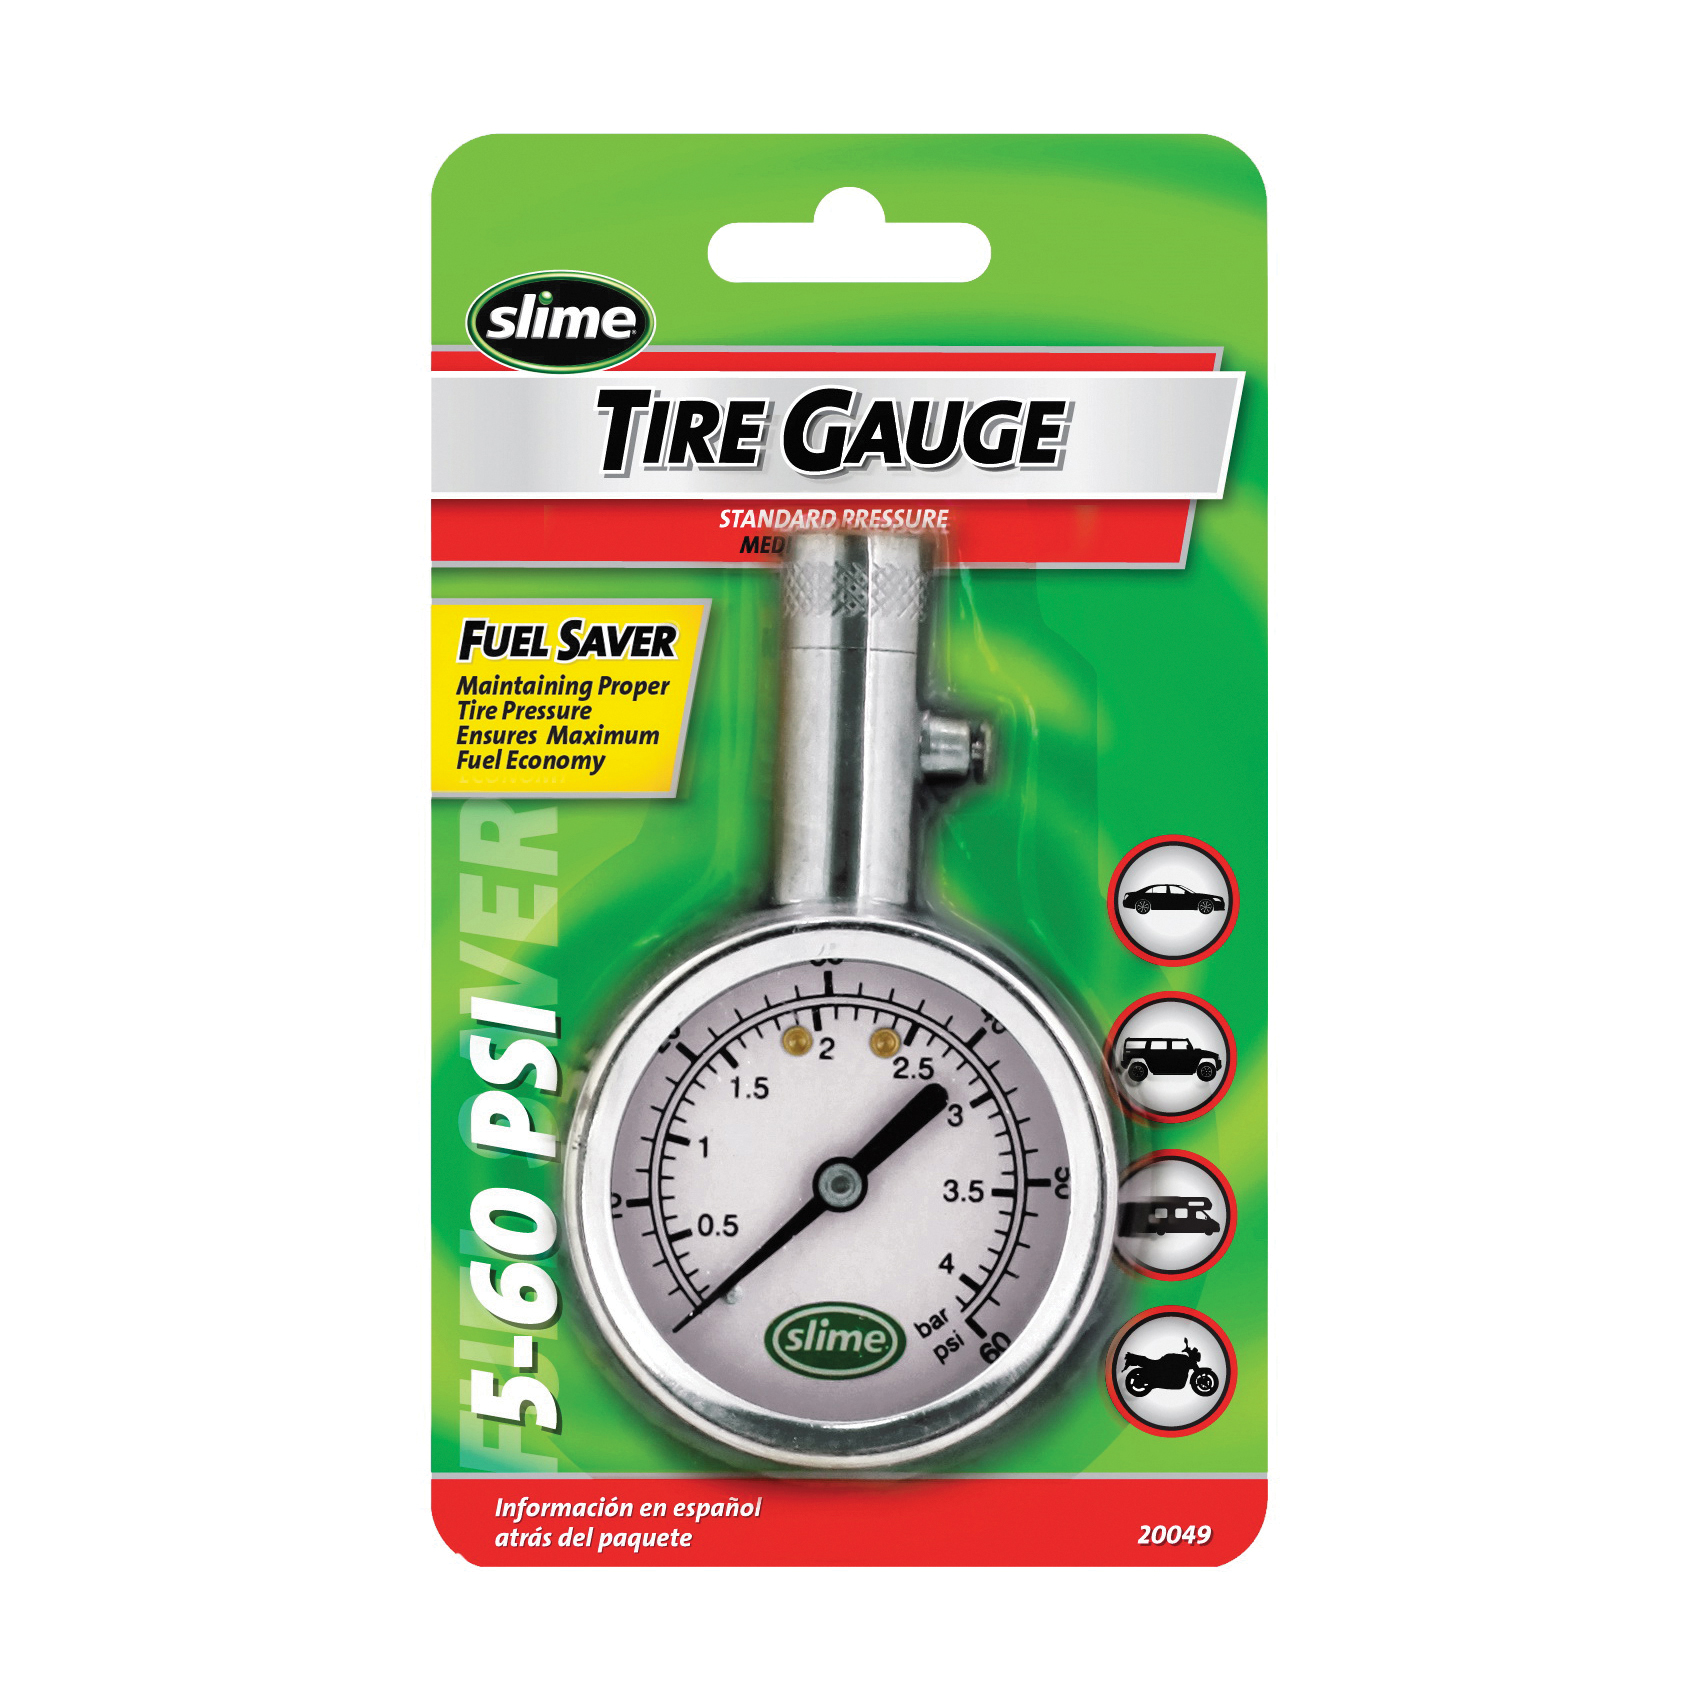 Picture of Slime 20049 Tire Gauge, 5 to 60 psi, Brass Gauge Case